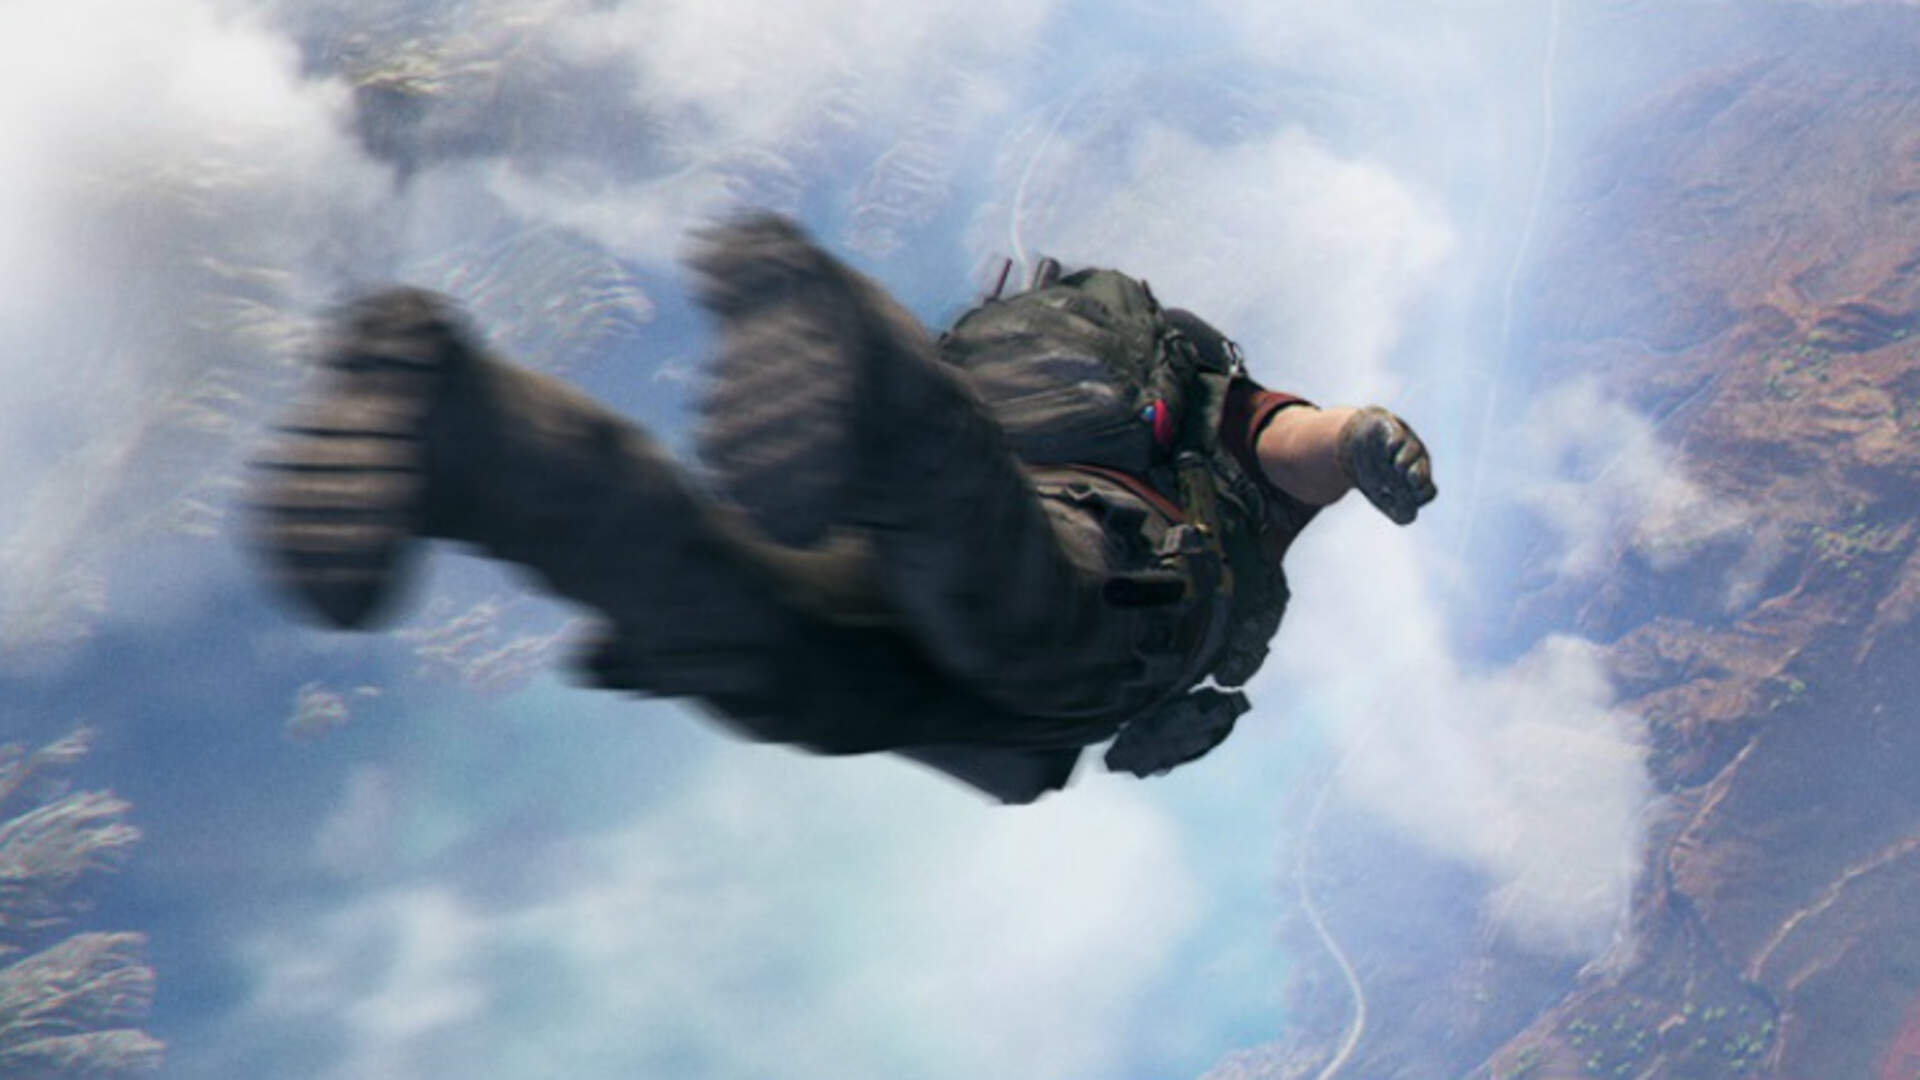 Ghost Recon Wildlands Takes The Number One Spot In March